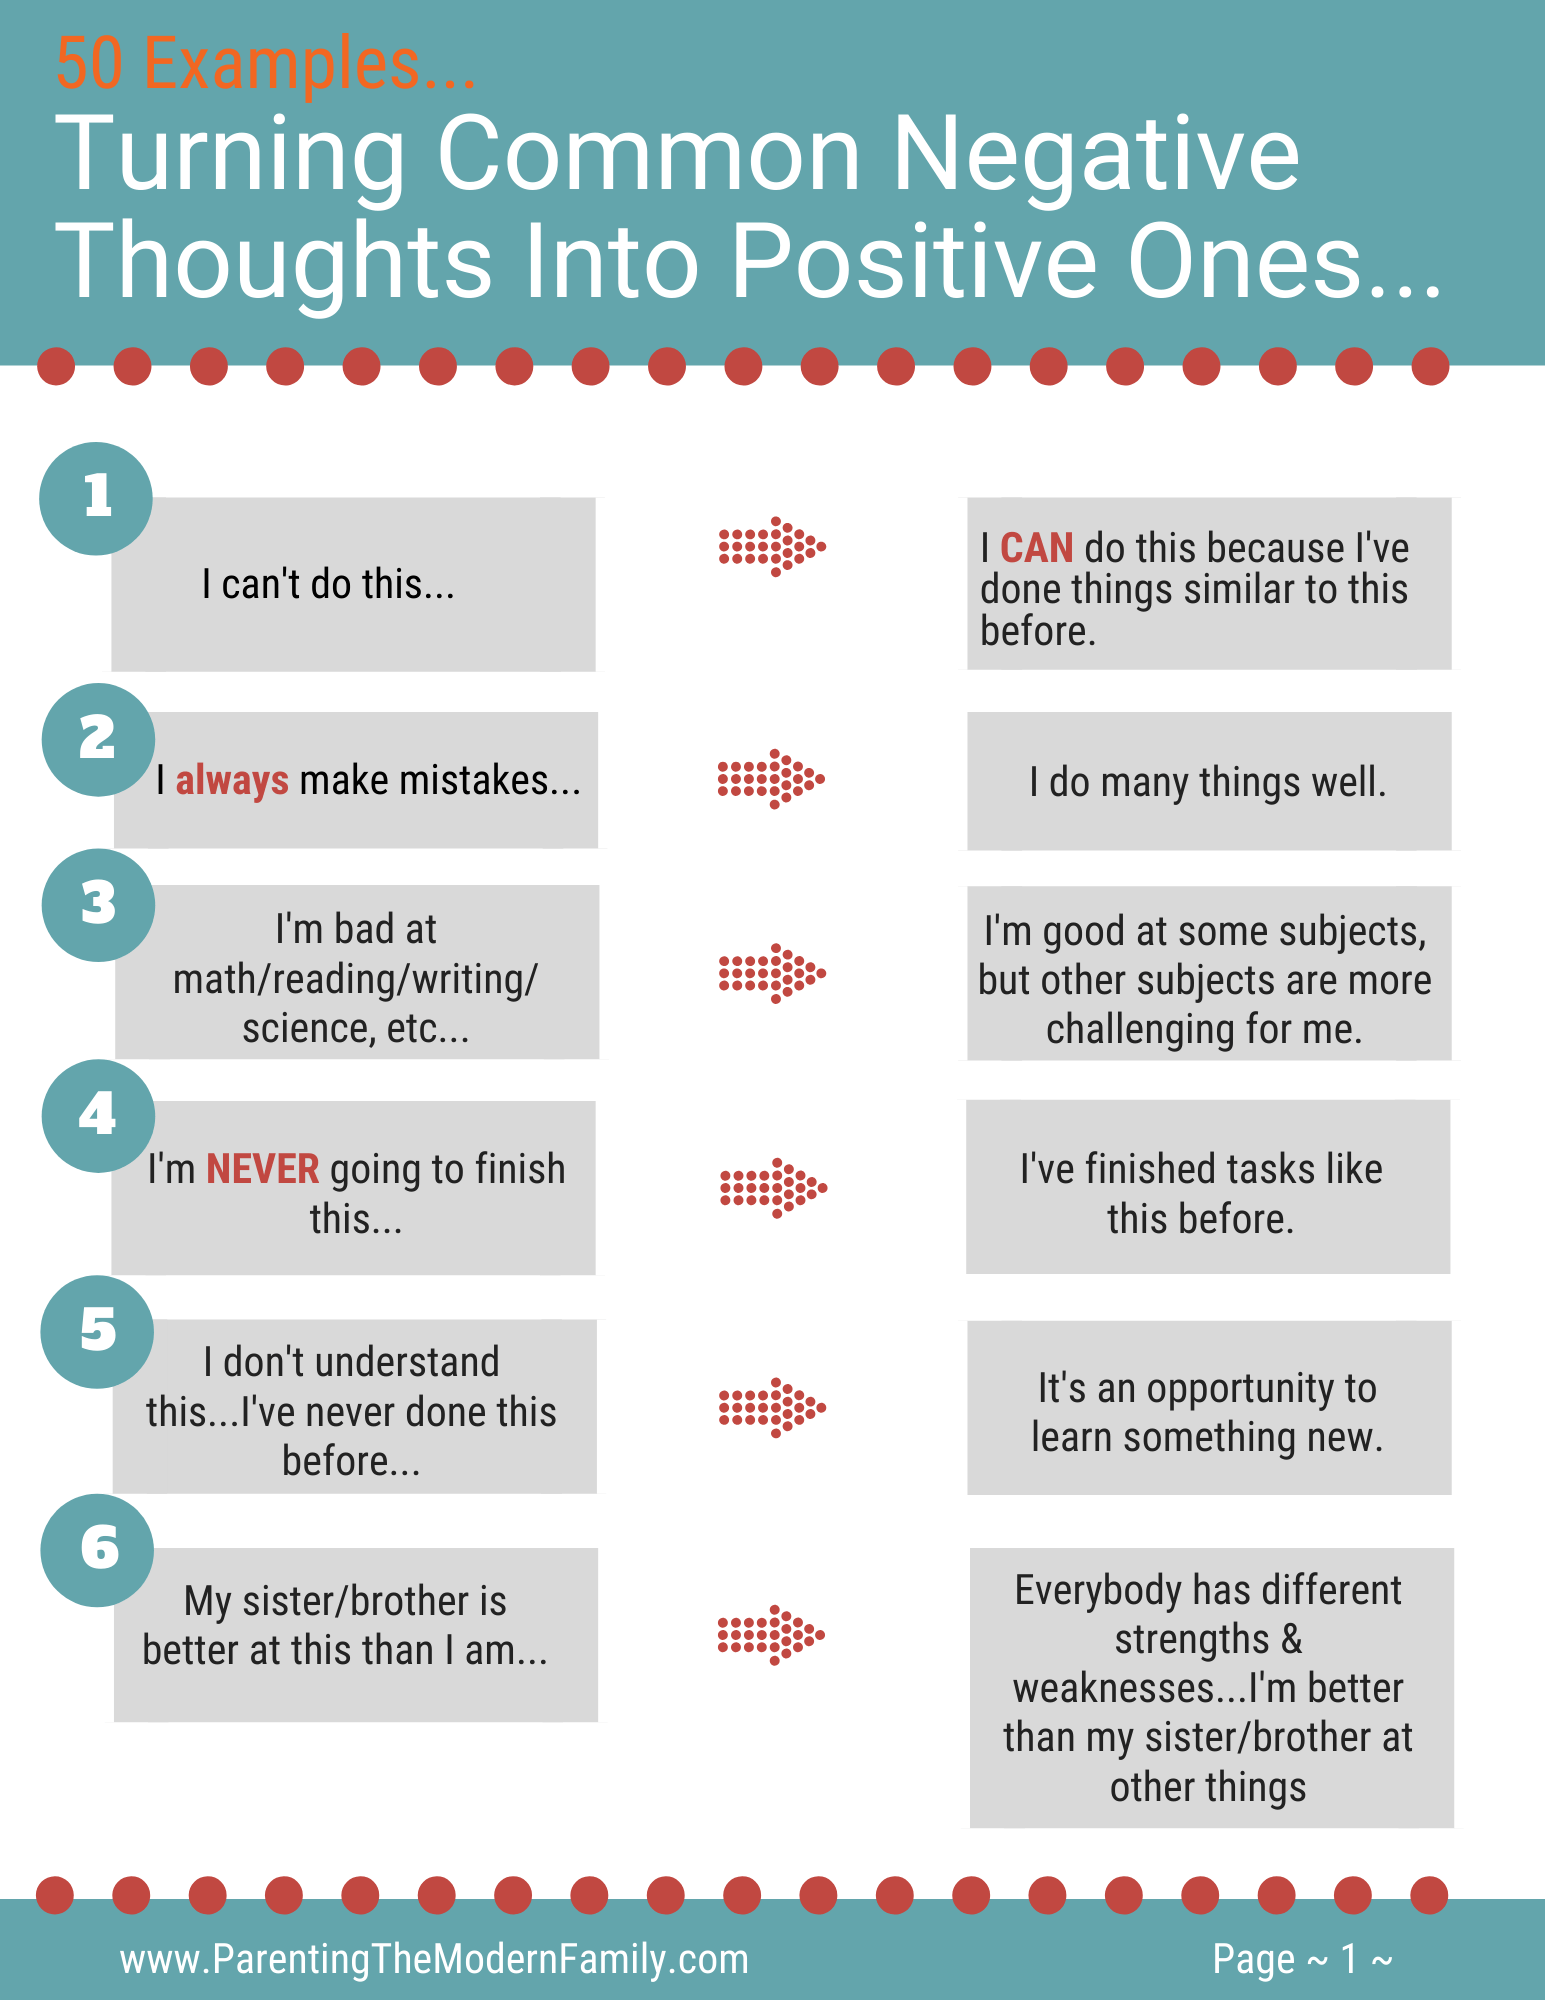 50 Examples Of Turning Common Negative Thoughts Into